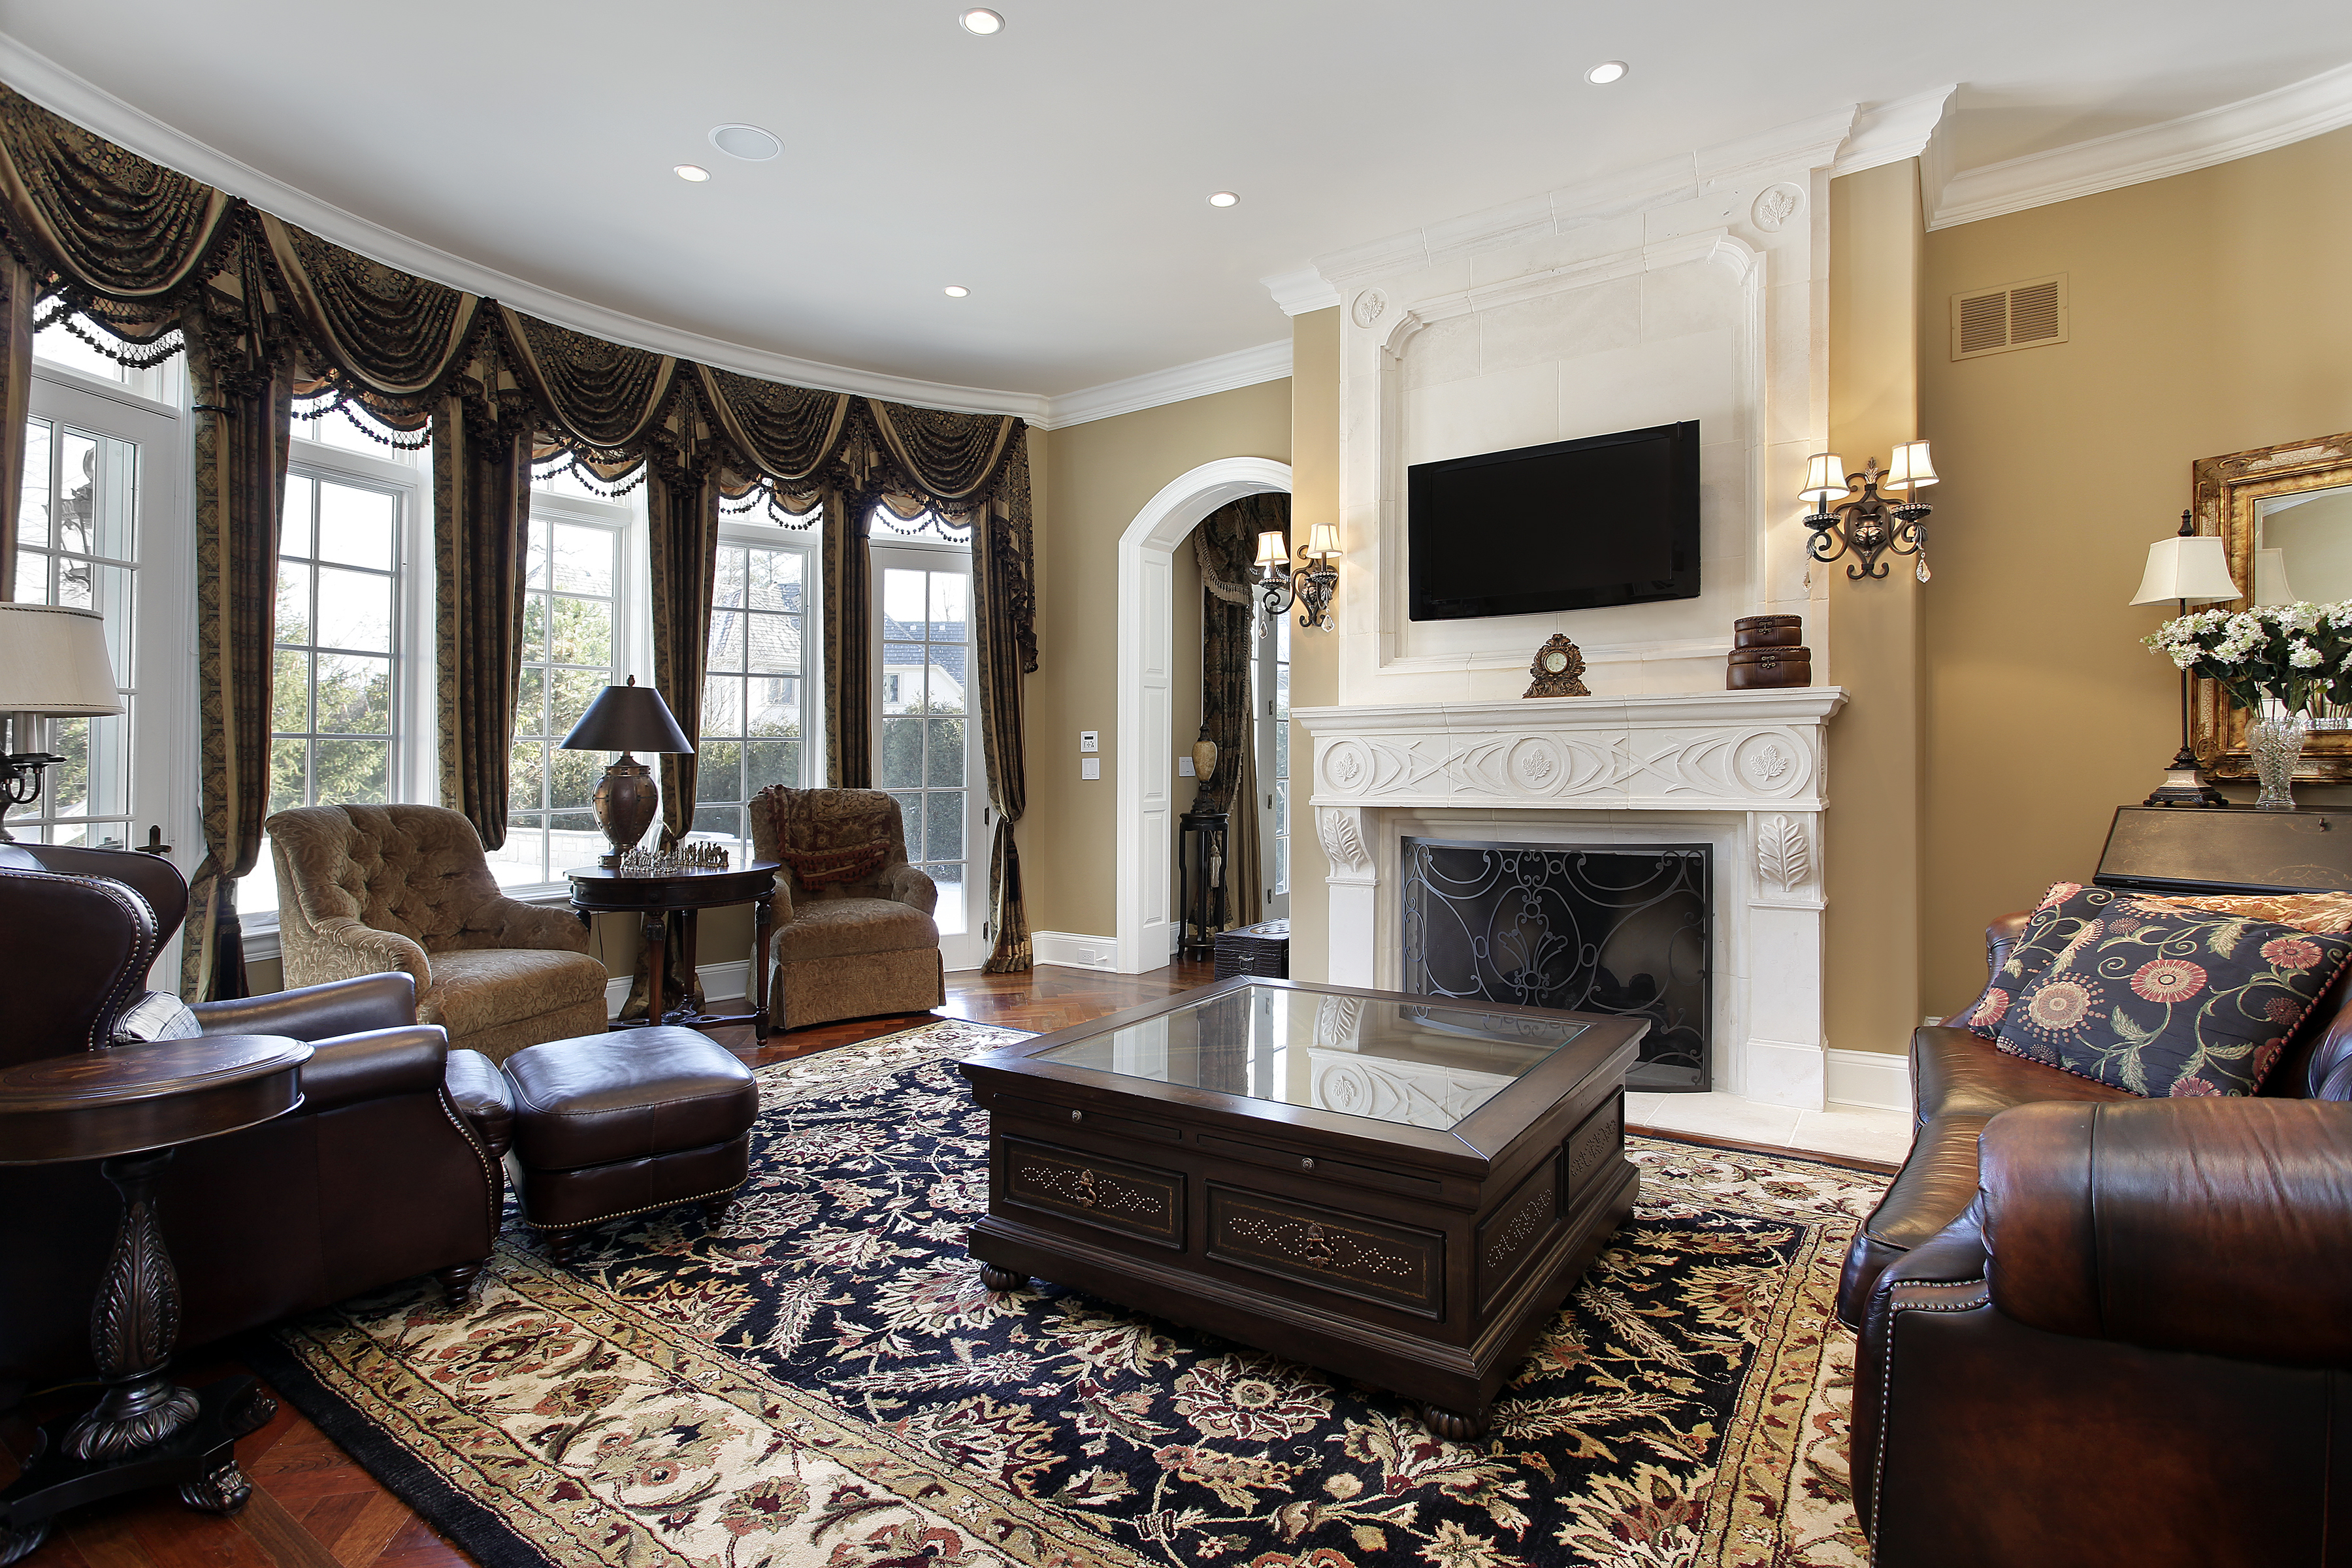 bigstock-Family-room-in-luxury-home-wit-16568468